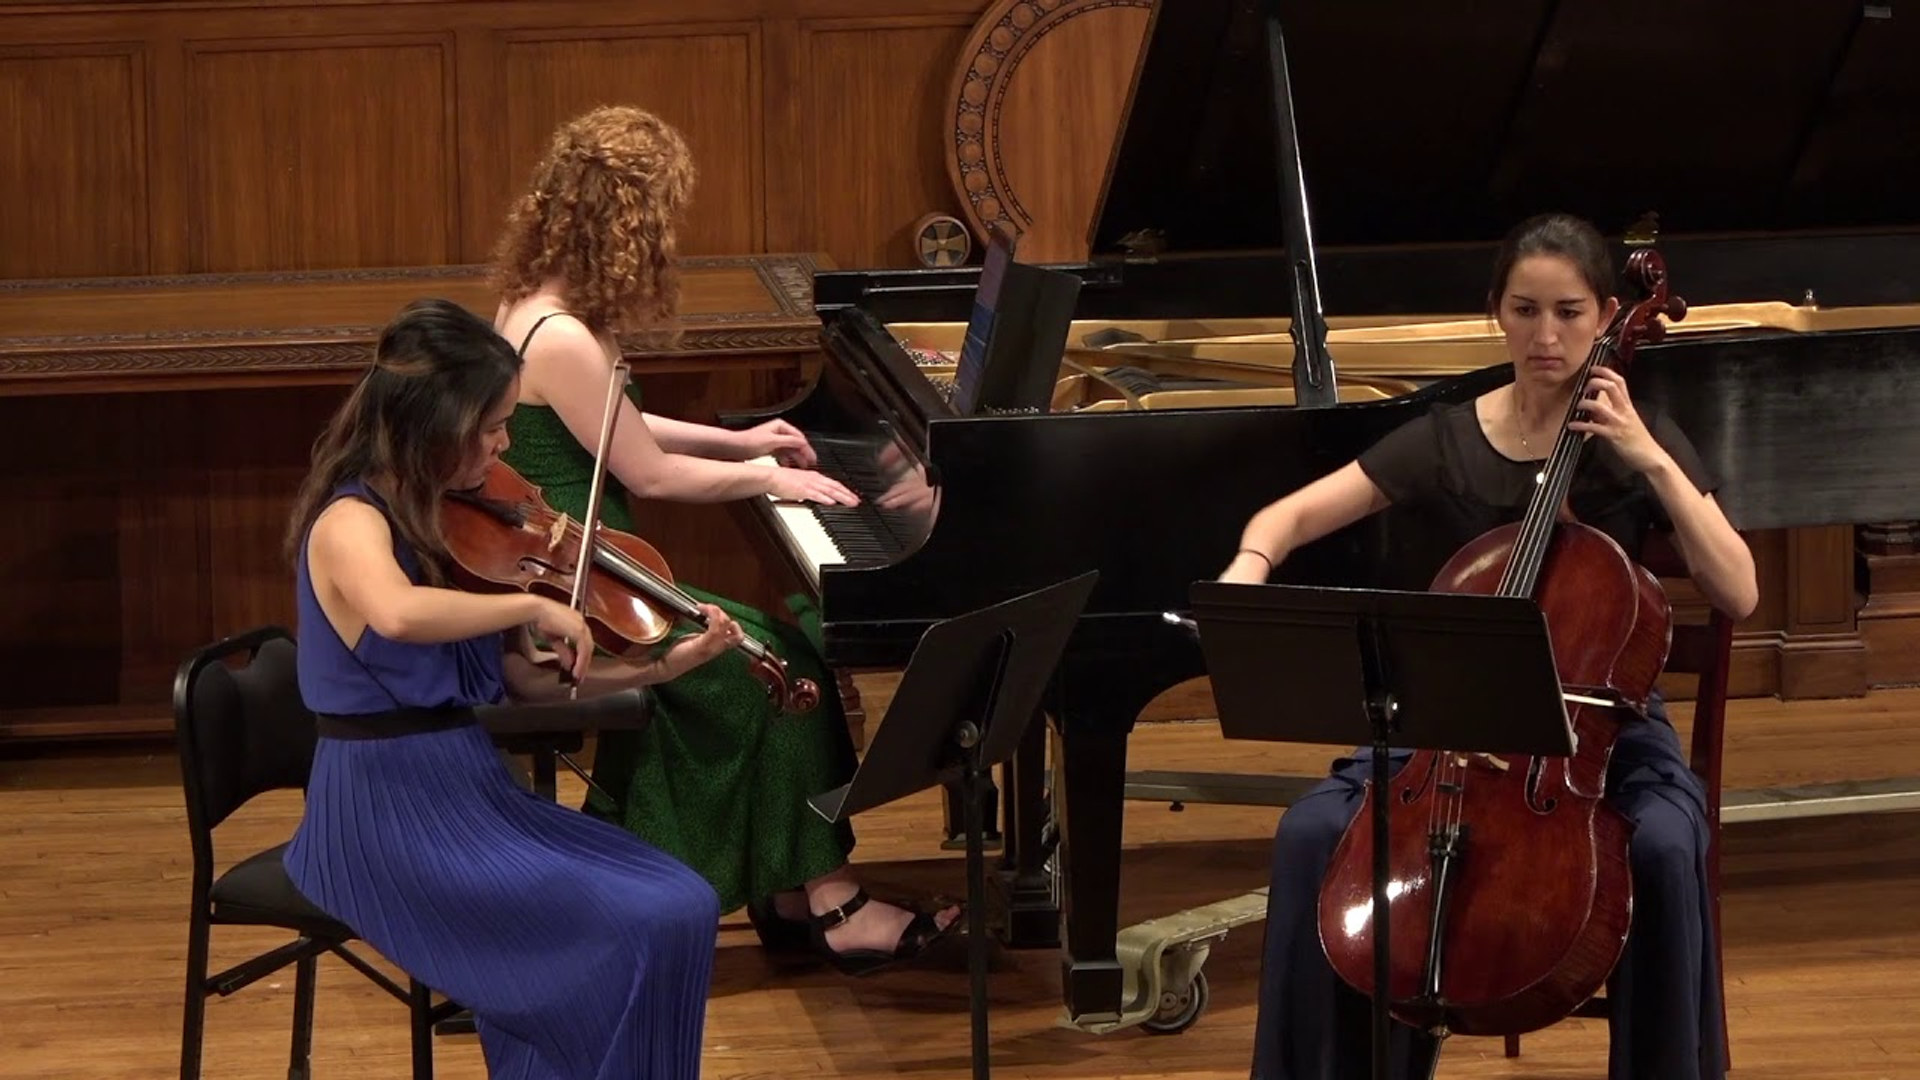 Ensemble Illume plays Brahms Trio in A minor, Op. 114, IV. Allegro